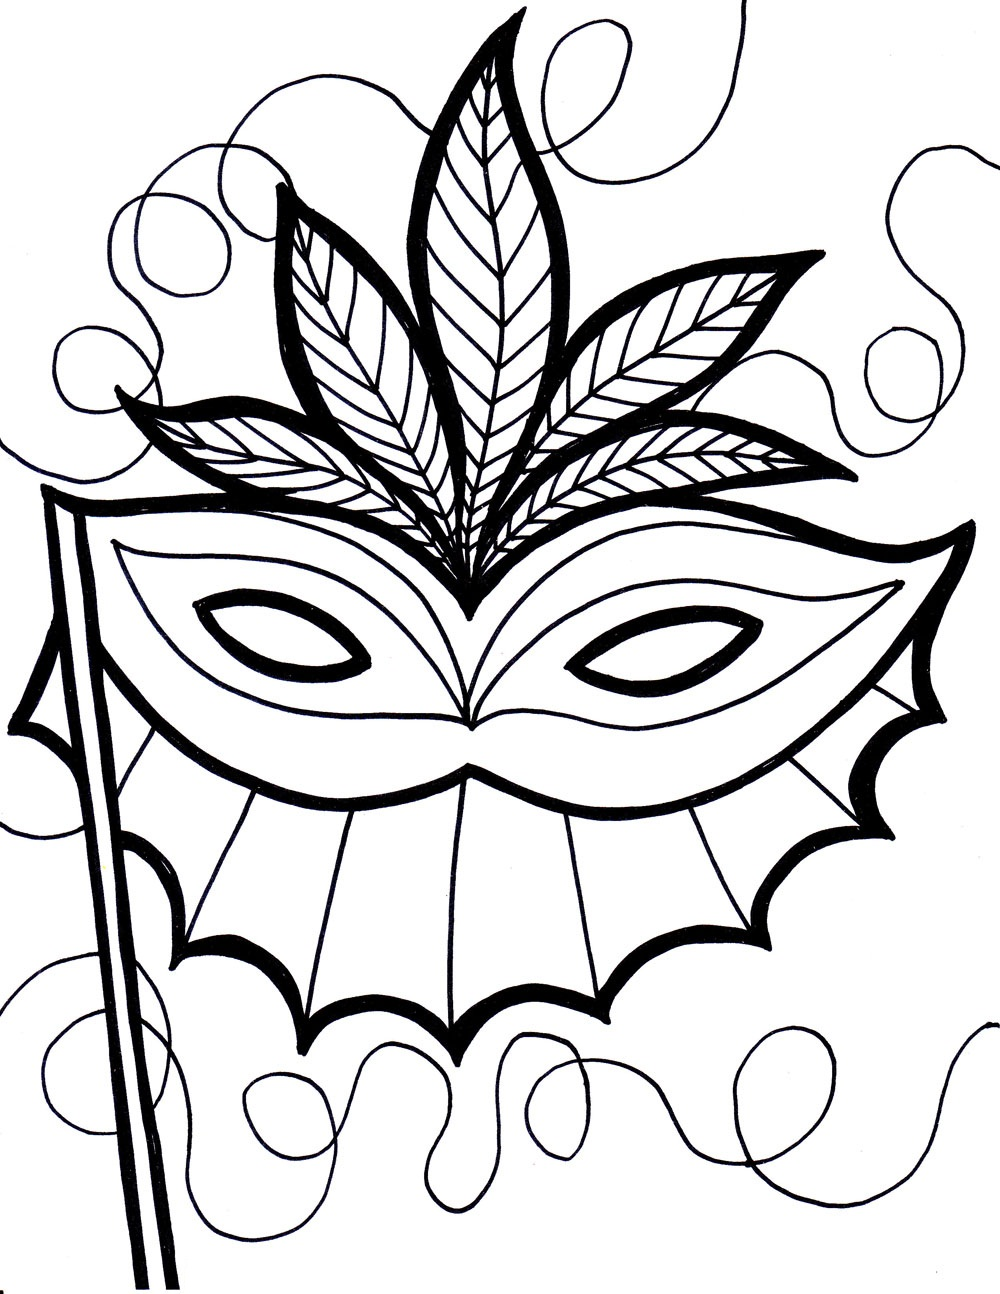 1000x1294 Happy New Year Coloring Page Coloring Print Colouring In Funny